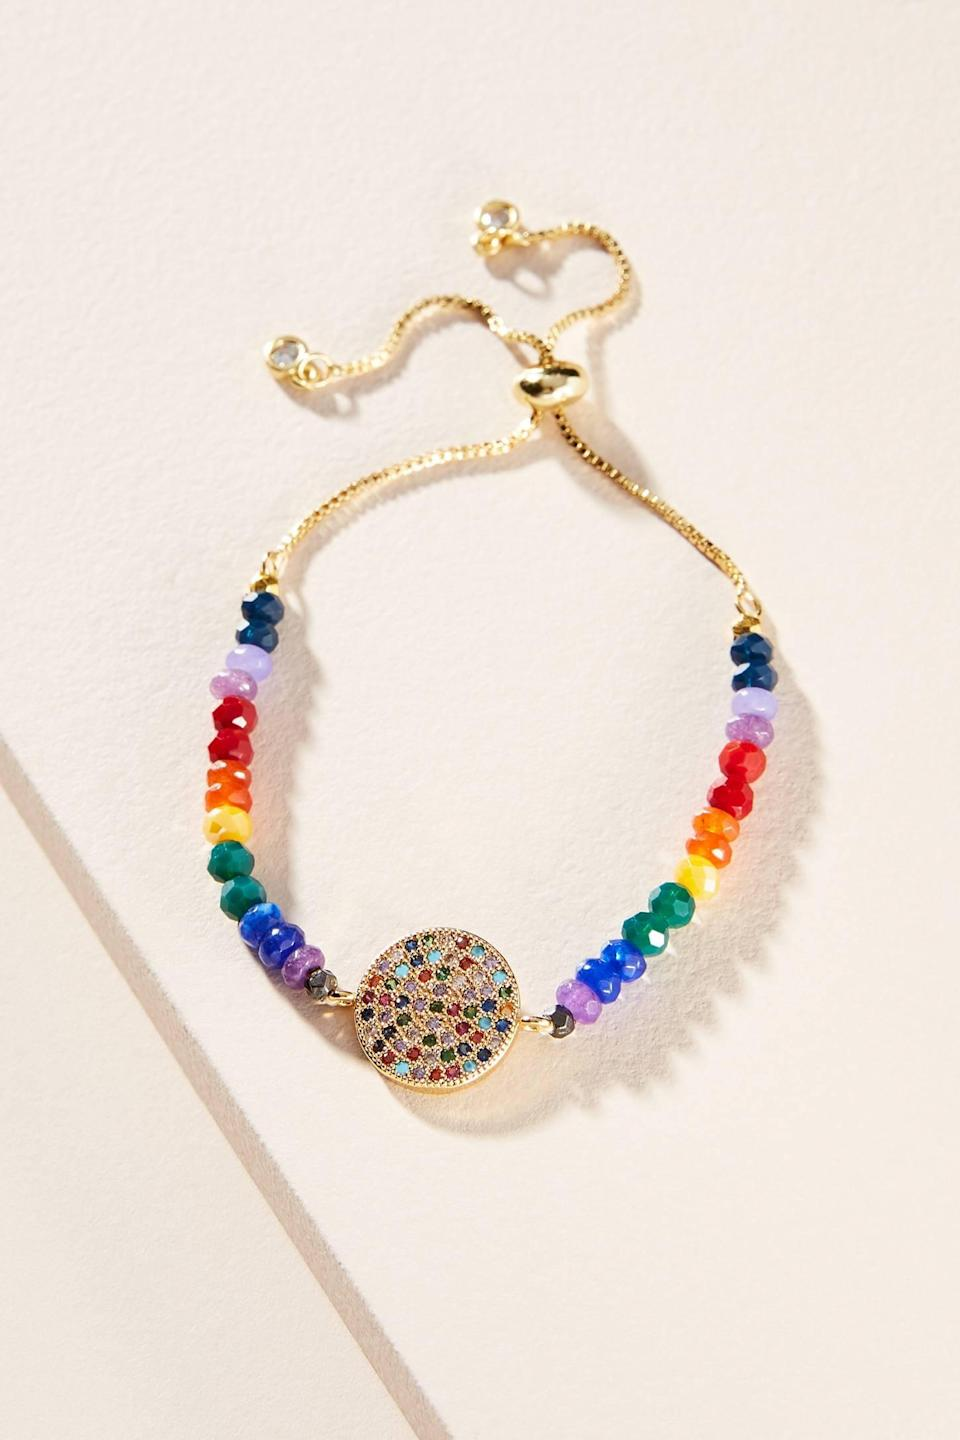 """<p>There are four different versions of this <a href=""""https://www.popsugar.com/buy/Perrie-Charm-Bracelet-519502?p_name=Perrie%20Charm%20Bracelet&retailer=anthropologie.com&pid=519502&price=18&evar1=fab%3Aus&evar9=45574771&evar98=https%3A%2F%2Fwww.popsugar.com%2Ffashion%2Fphoto-gallery%2F45574771%2Fimage%2F47015901%2FPerrie-Charm-Bracelet&list1=shopping%2Cgifts%2Choliday%2Cgift%20guide%2Clast-minute%20gifts%2Cfashion%20gifts%2Cgifts%20for%20women&prop13=api&pdata=1"""" class=""""link rapid-noclick-resp"""" rel=""""nofollow noopener"""" target=""""_blank"""" data-ylk=""""slk:Perrie Charm Bracelet"""">Perrie Charm Bracelet</a> ($18).</p>"""